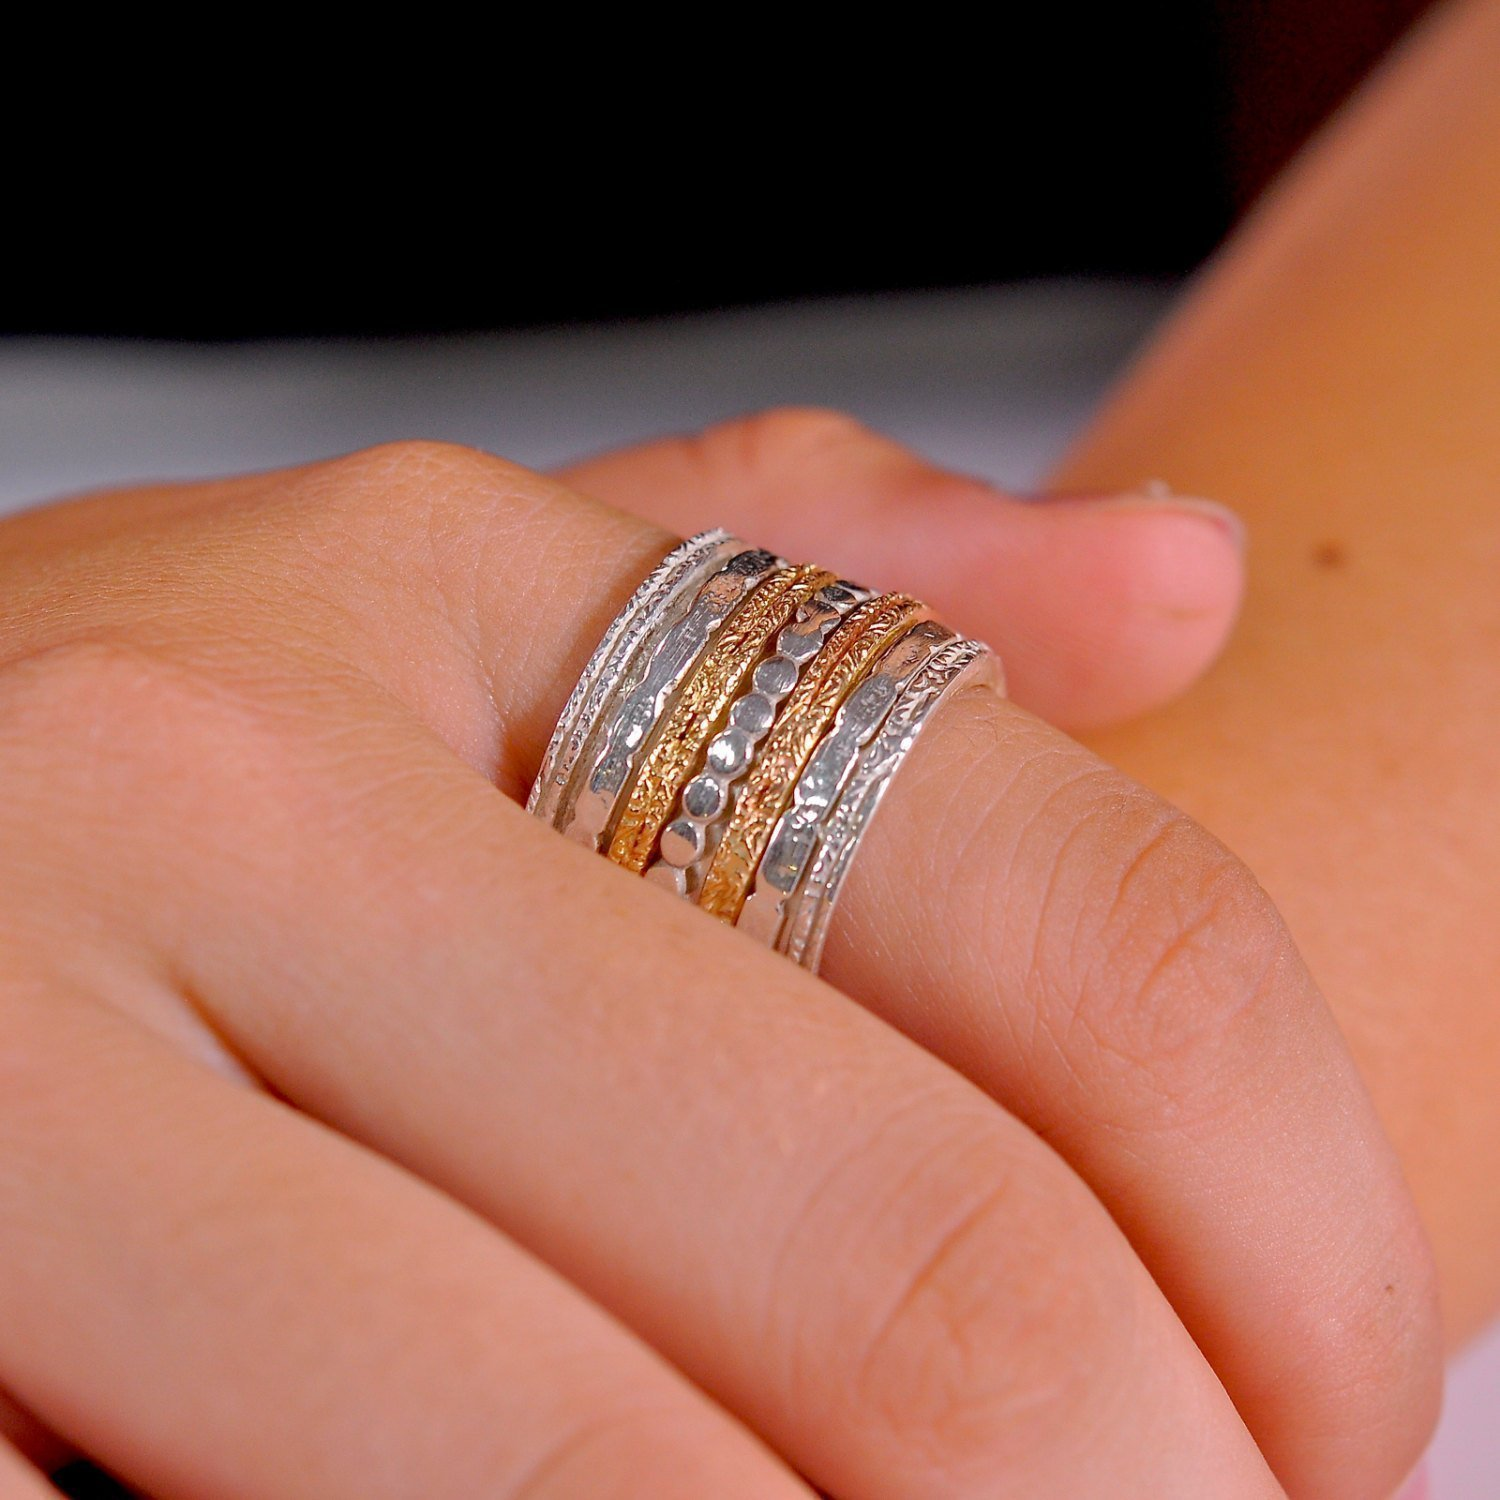 This is an image of Multi spinner wide Worry or Anxiety ring perfect Alternative Silver wedding band